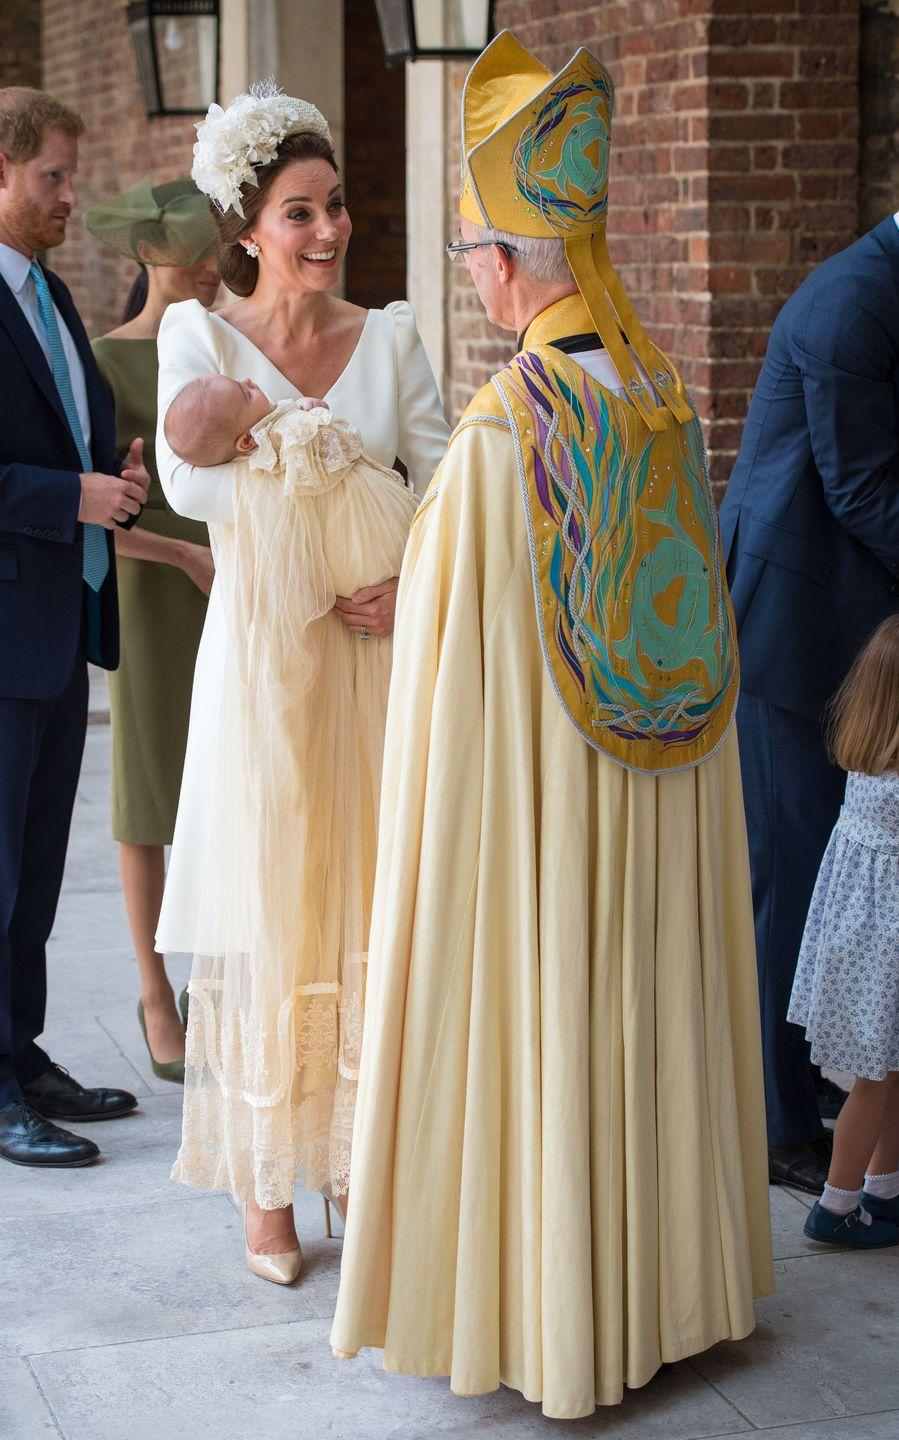 """<p>Queen Elizabeth II is the head of the church and, as such, all of the members of her family <a href=""""https://www.goodhousekeeping.com/life/parenting/g5096/royal-family-baby-traditions/?slide=24"""" rel=""""nofollow noopener"""" target=""""_blank"""" data-ylk=""""slk:must be baptized"""" class=""""link rapid-noclick-resp"""">must be baptized</a>—even <a href=""""https://www.dailymail.co.uk/news/article-5474919/Meghan-Markle-baptised-secret-ceremony-Chapel-Royal.html"""" rel=""""nofollow noopener"""" target=""""_blank"""" data-ylk=""""slk:Meghan Markle was anointed"""" class=""""link rapid-noclick-resp"""">Meghan Markle was anointed</a> before her 2018 wedding. The ceremony is overseen by the Archbishop of Canterbury and features Holy Water from the Jordan River. </p>"""